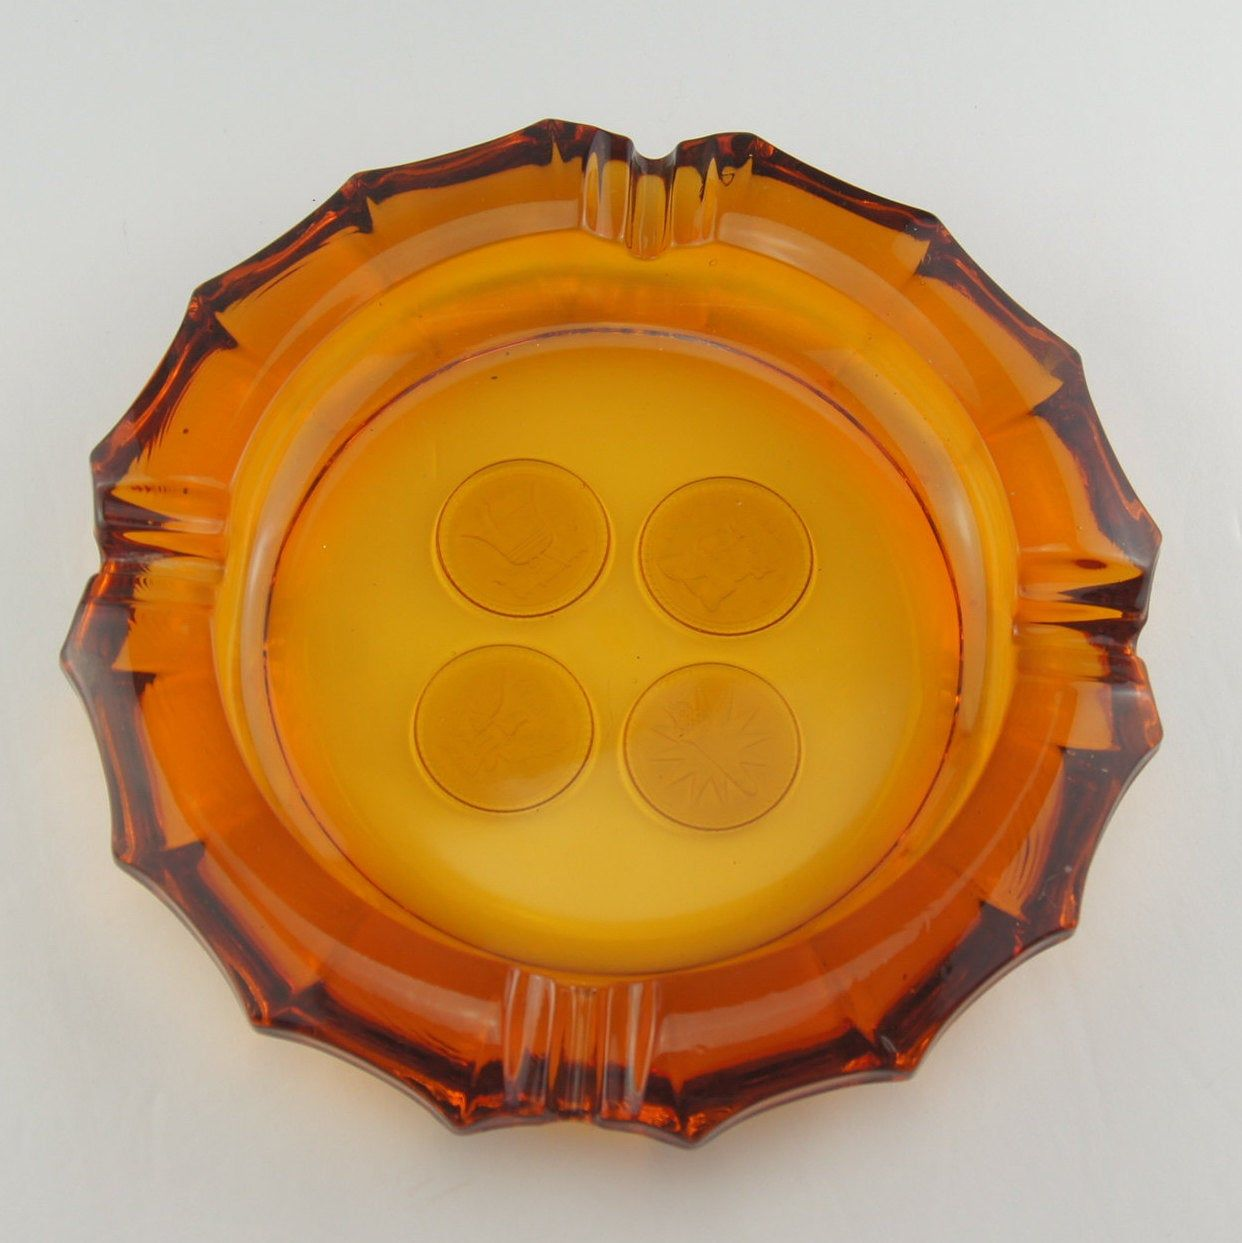 great condition very heavy over 7 inches in diameter Coin Ashtray vintage tobacciana 1950s or 1960s Fostoria amber coin ash tray